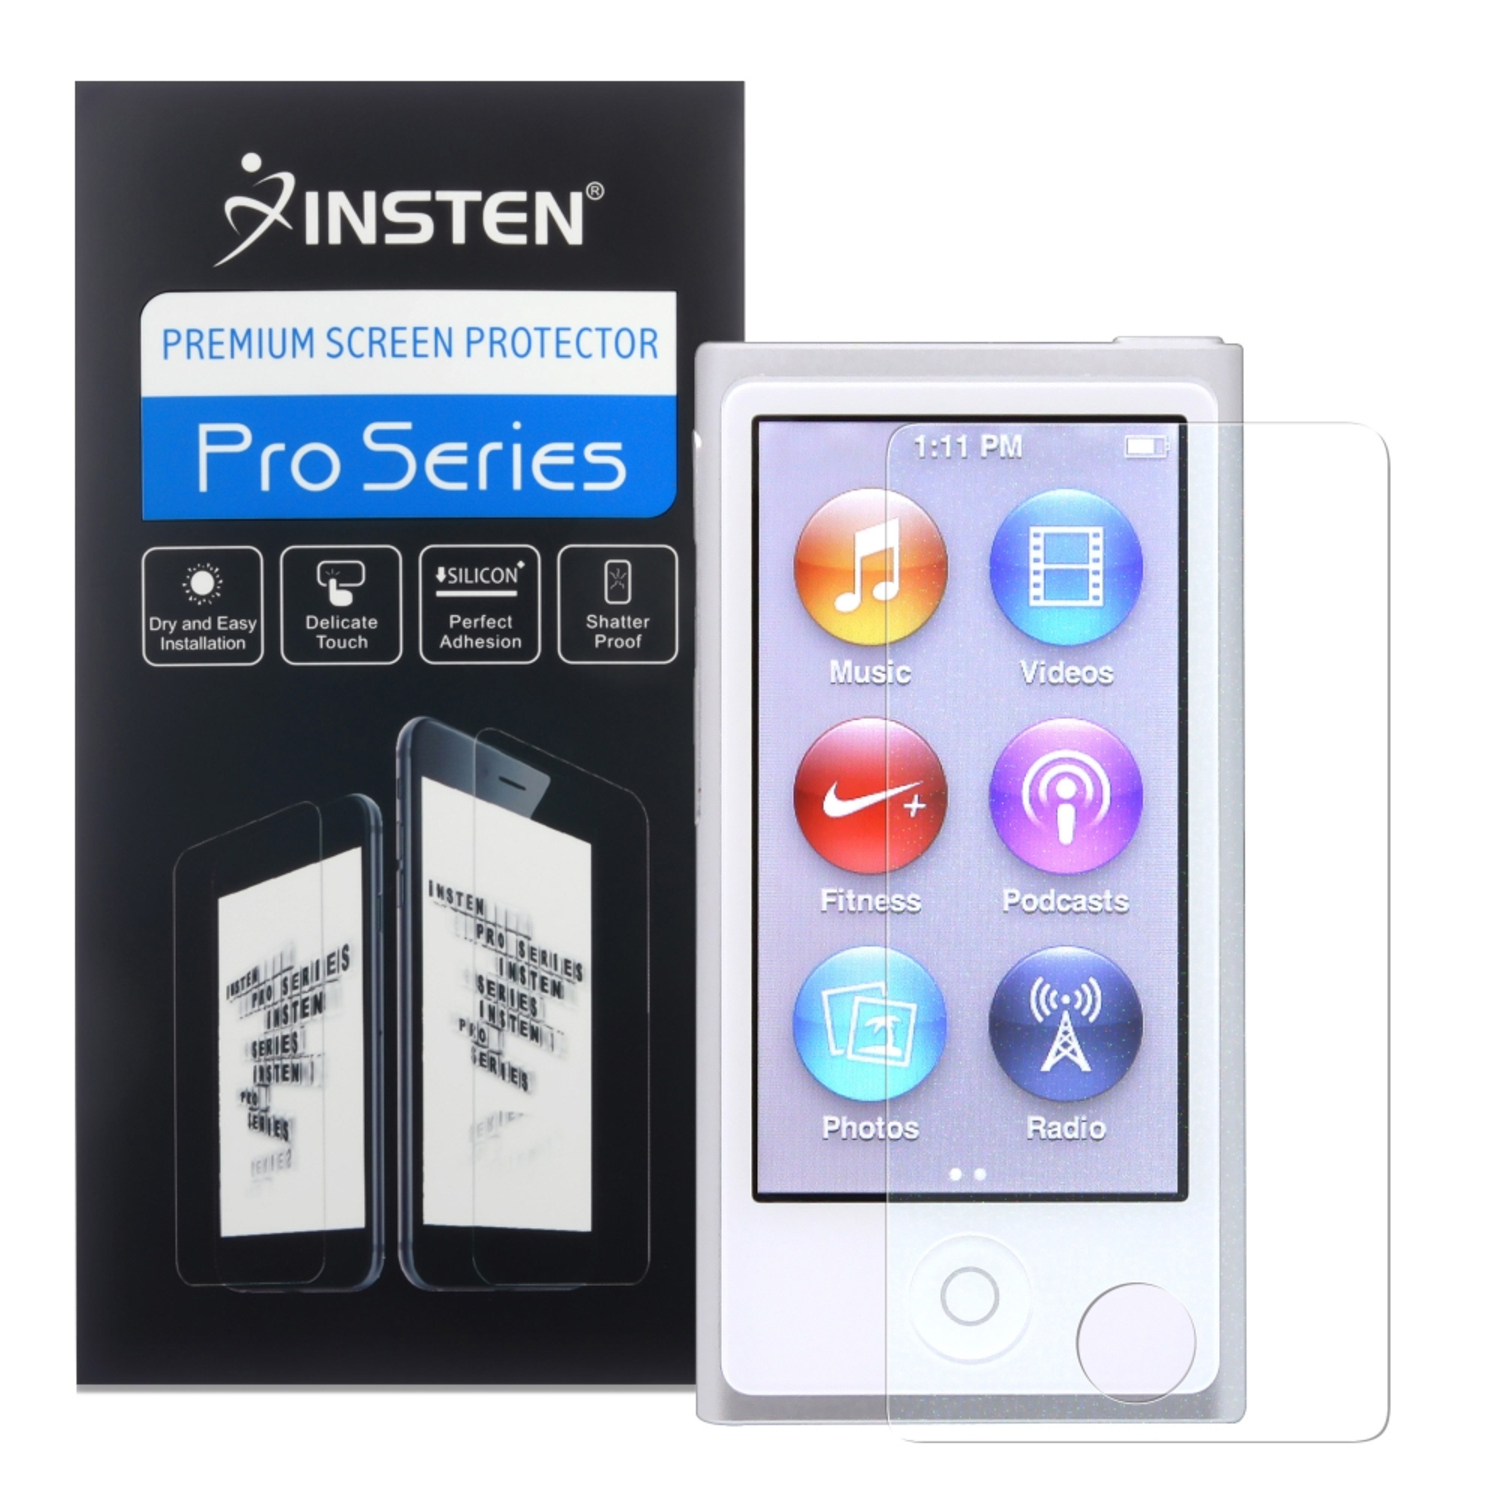 Insten 2x Colorful Diamond LCD Film Screen Protector For iPod Nano 7 7th Generation 7G